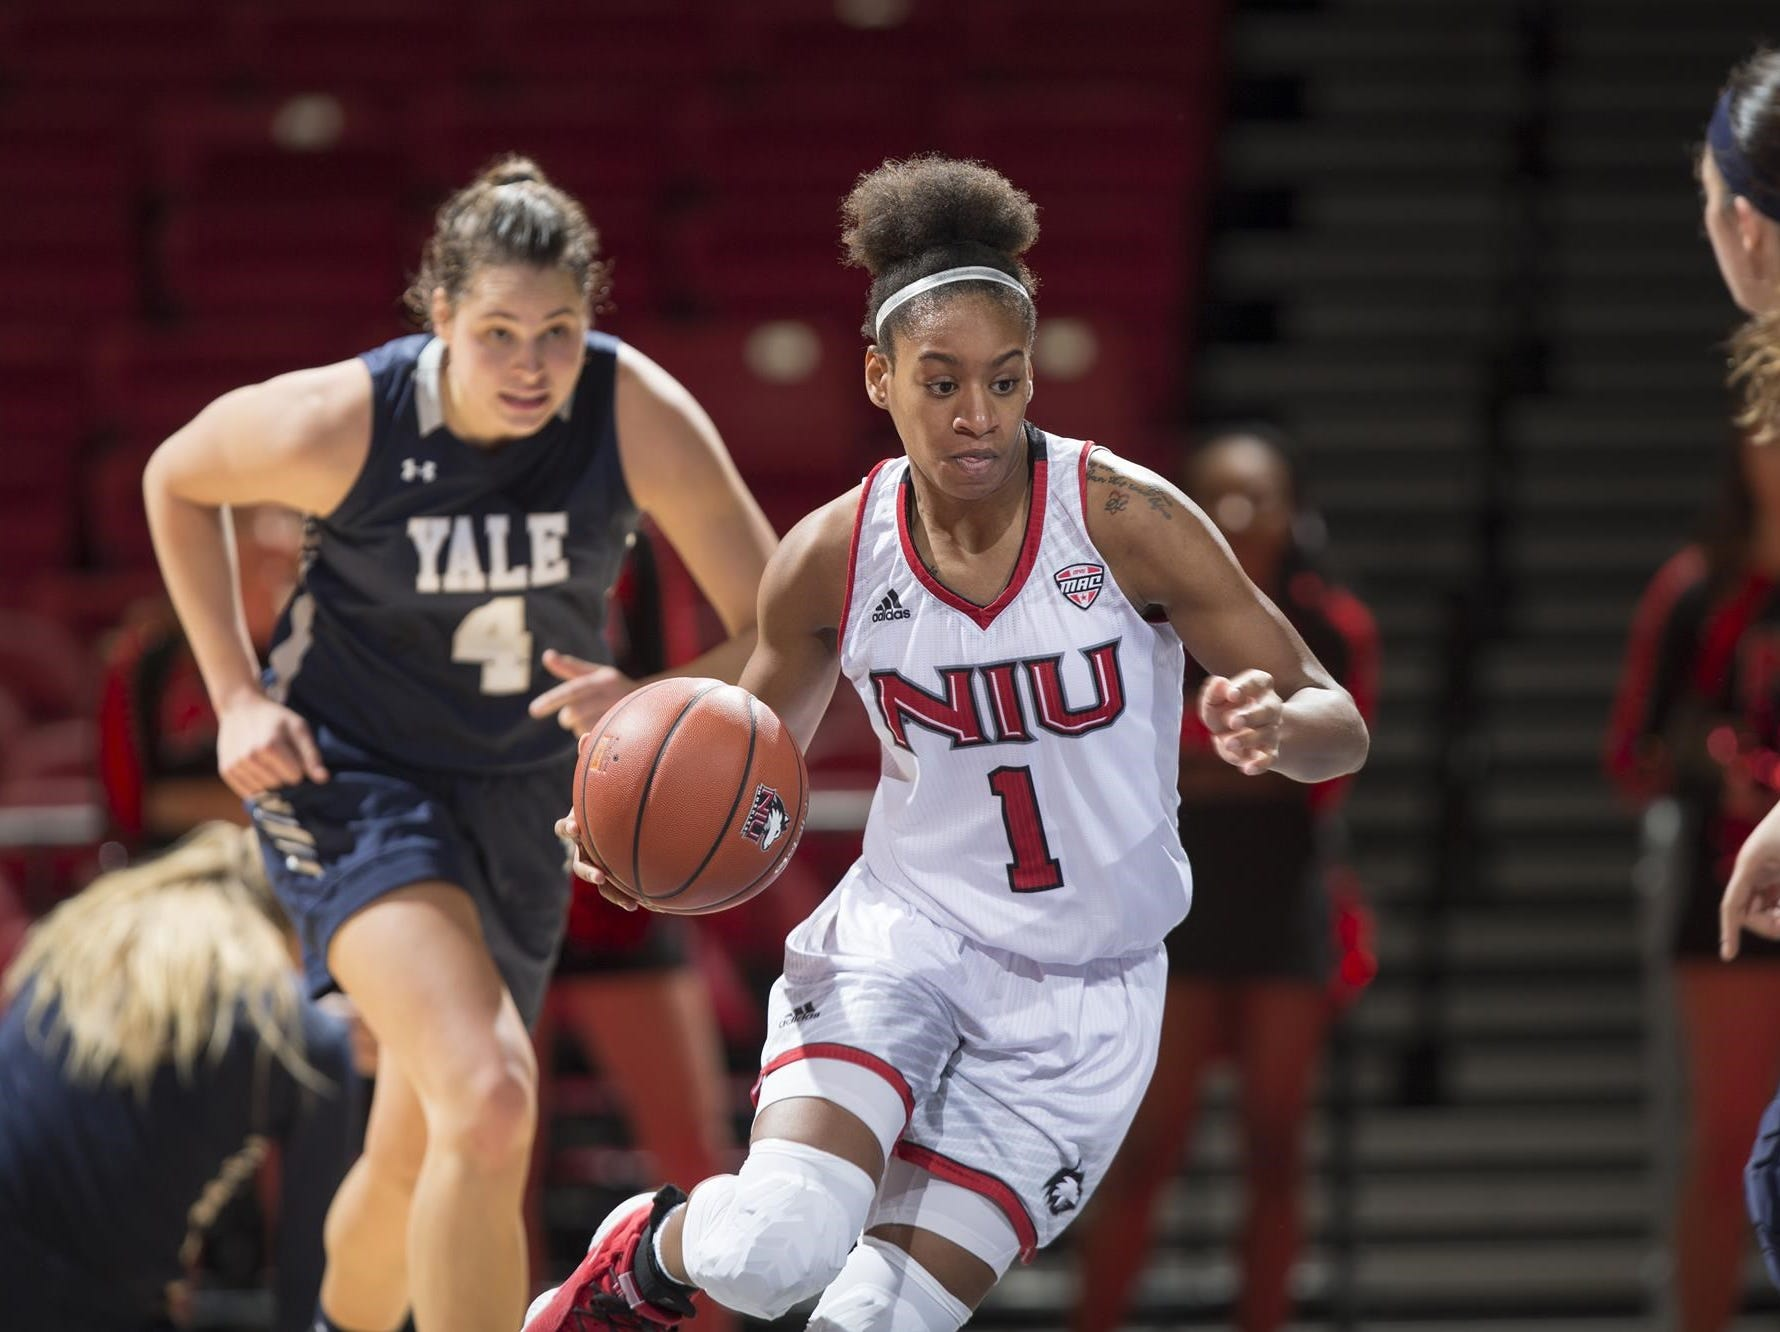 Evansville Central graduate Errin Hodges is a sophomore at Northern Illinois.